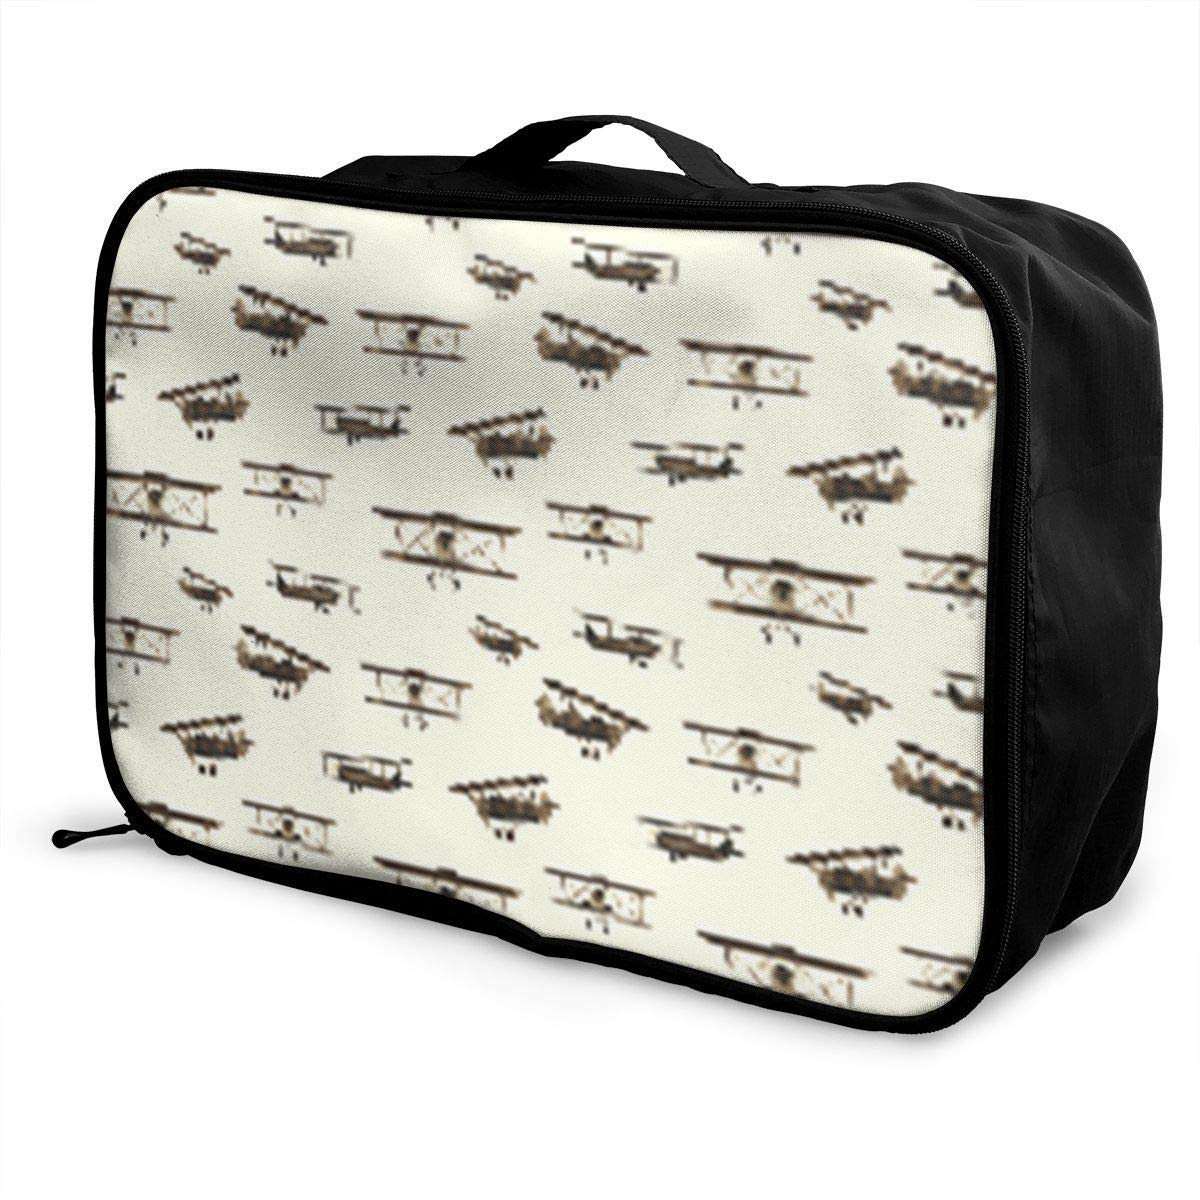 Portable Luggage Duffel Bag Retro Airplanes Travel Bags Carry-on In Trolley Handle